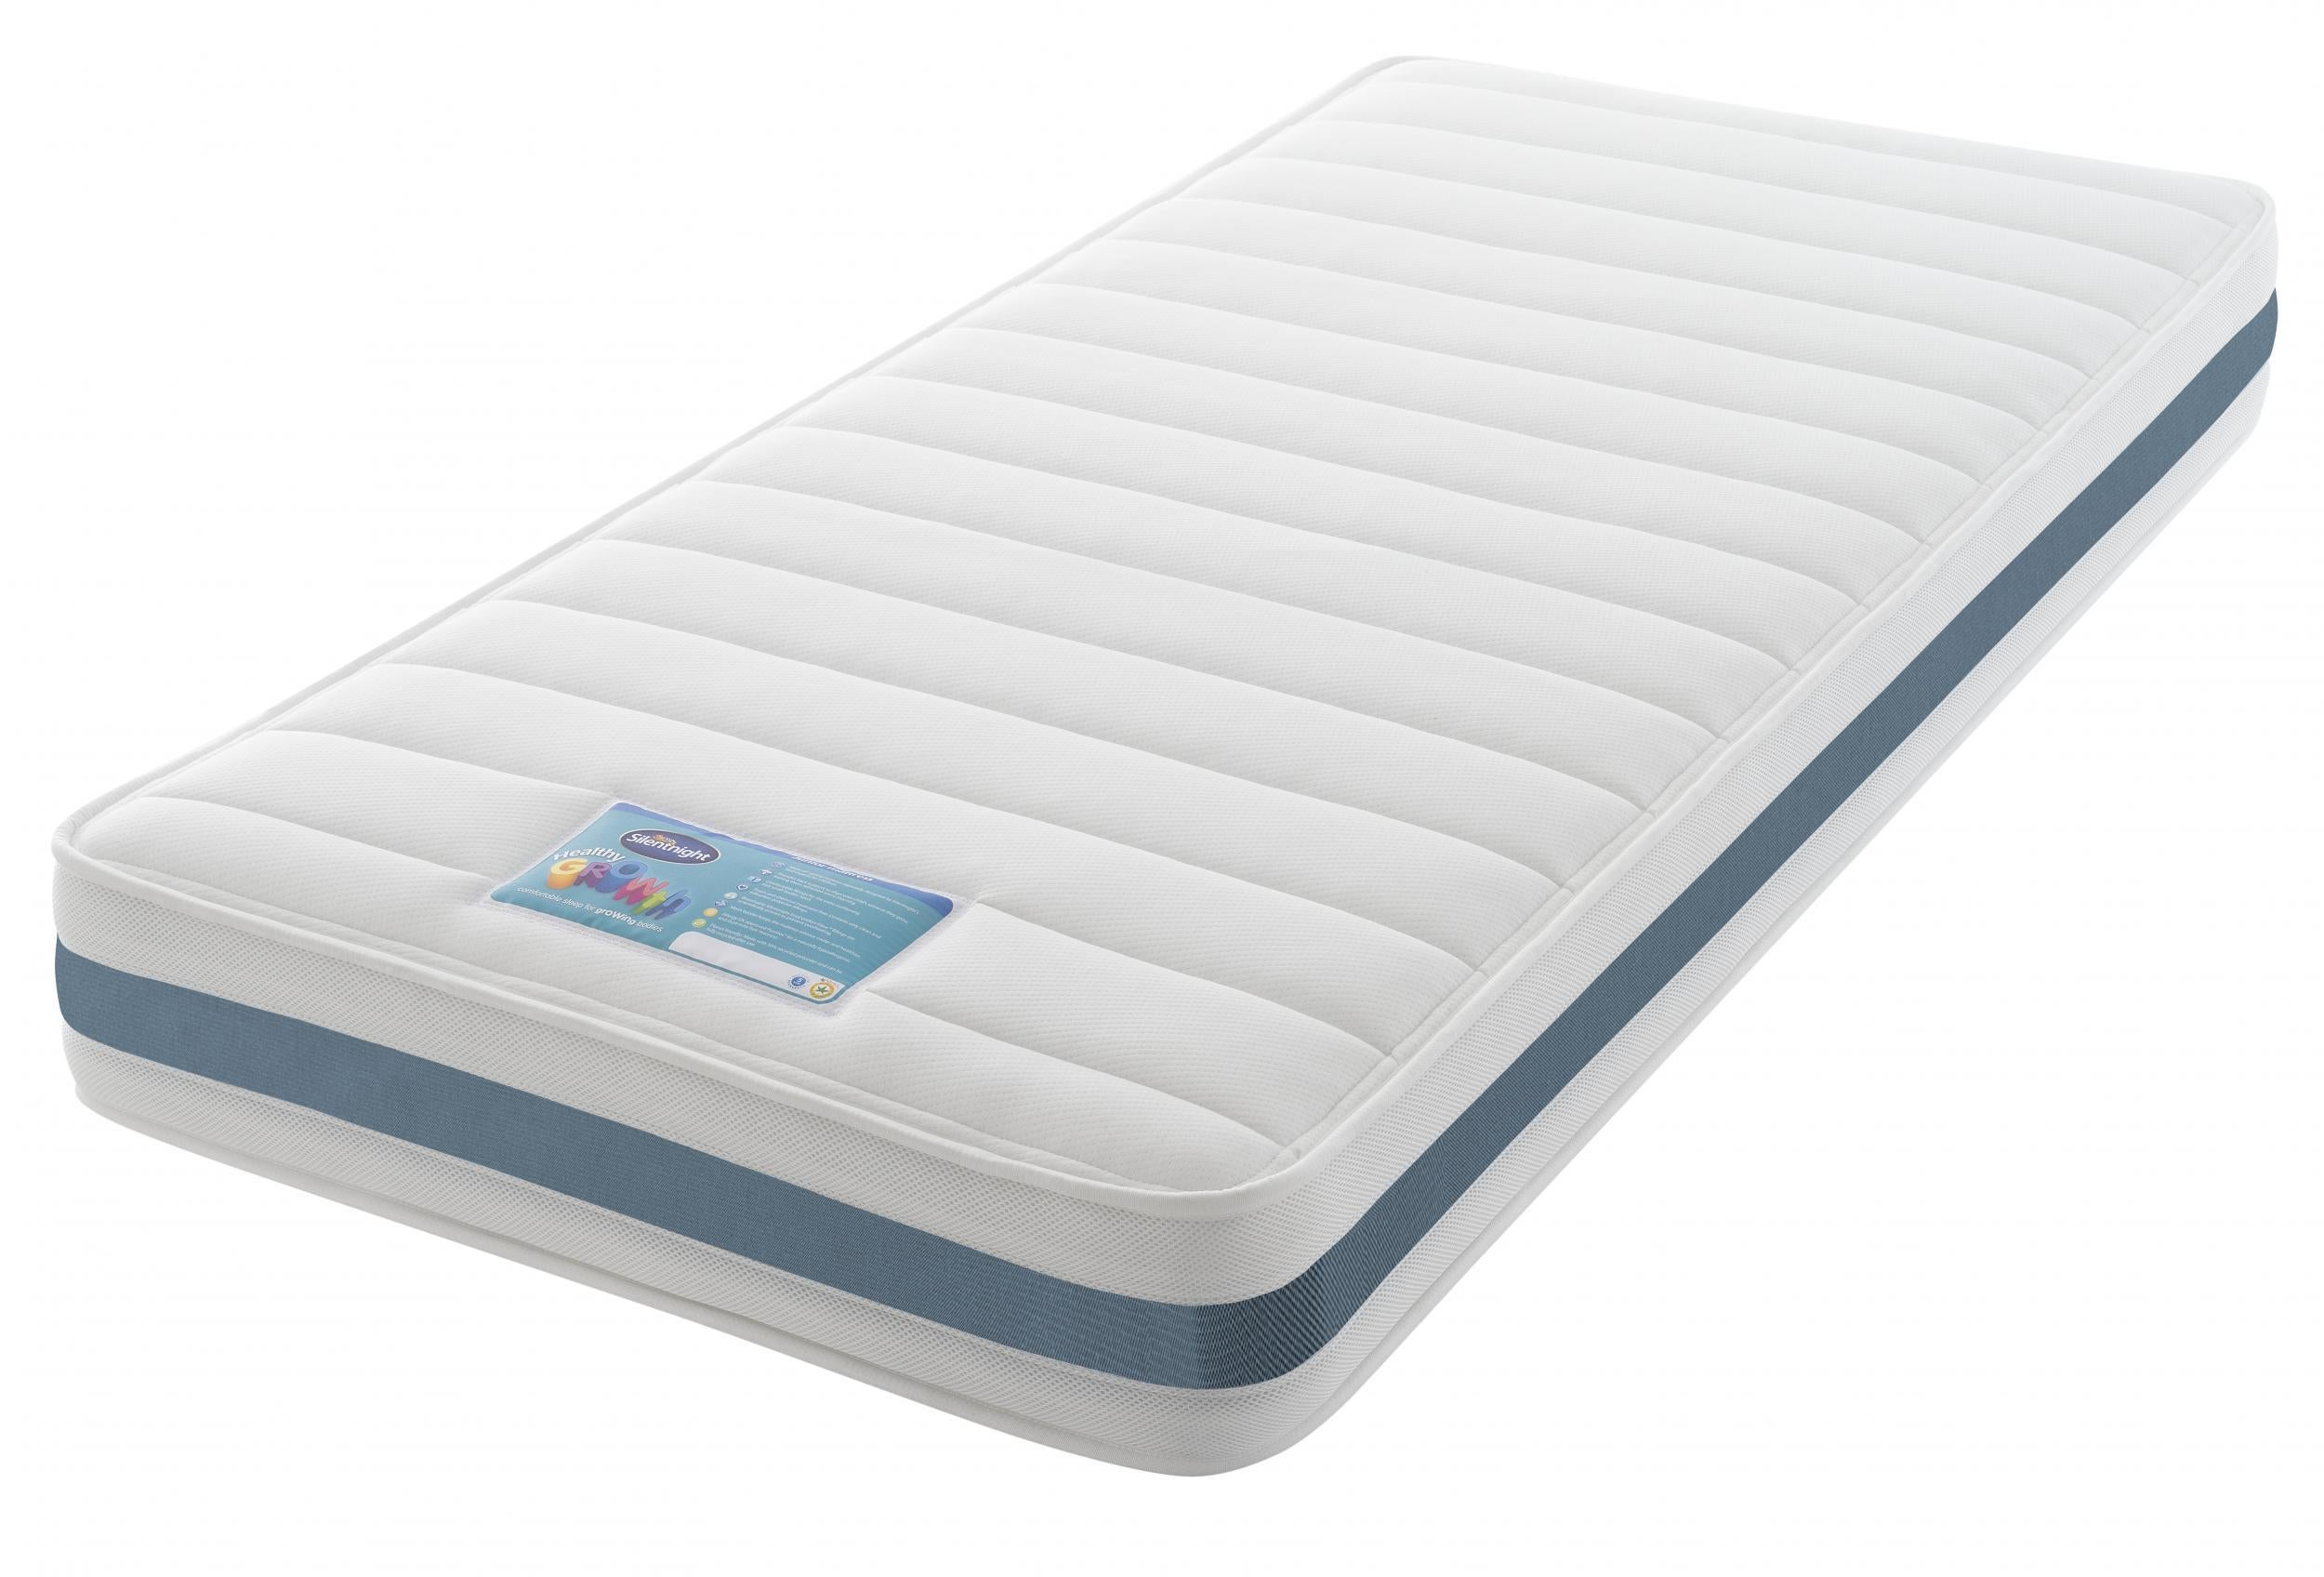 Which mattresses are better for children